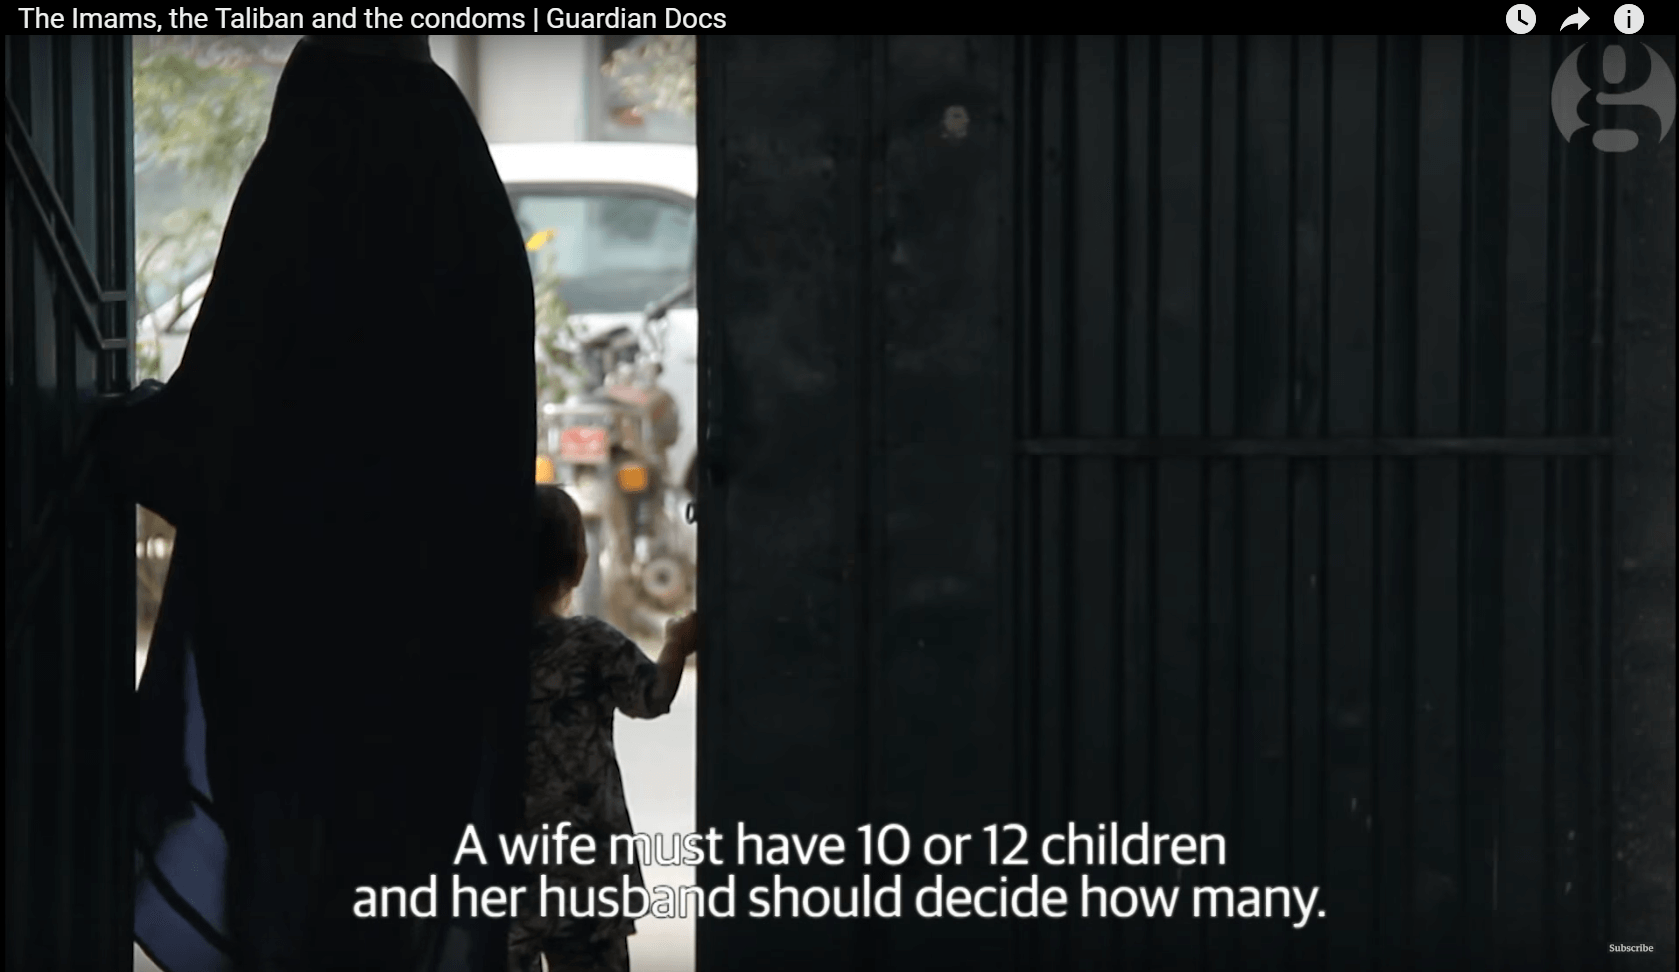 """A wife must have 10 or 12 children and her husband should decide how many. If we gave women a choice, they'd never have children and that would be a sin."" Afghan elder interviewed by The Guardian, 4 Nov 2015."